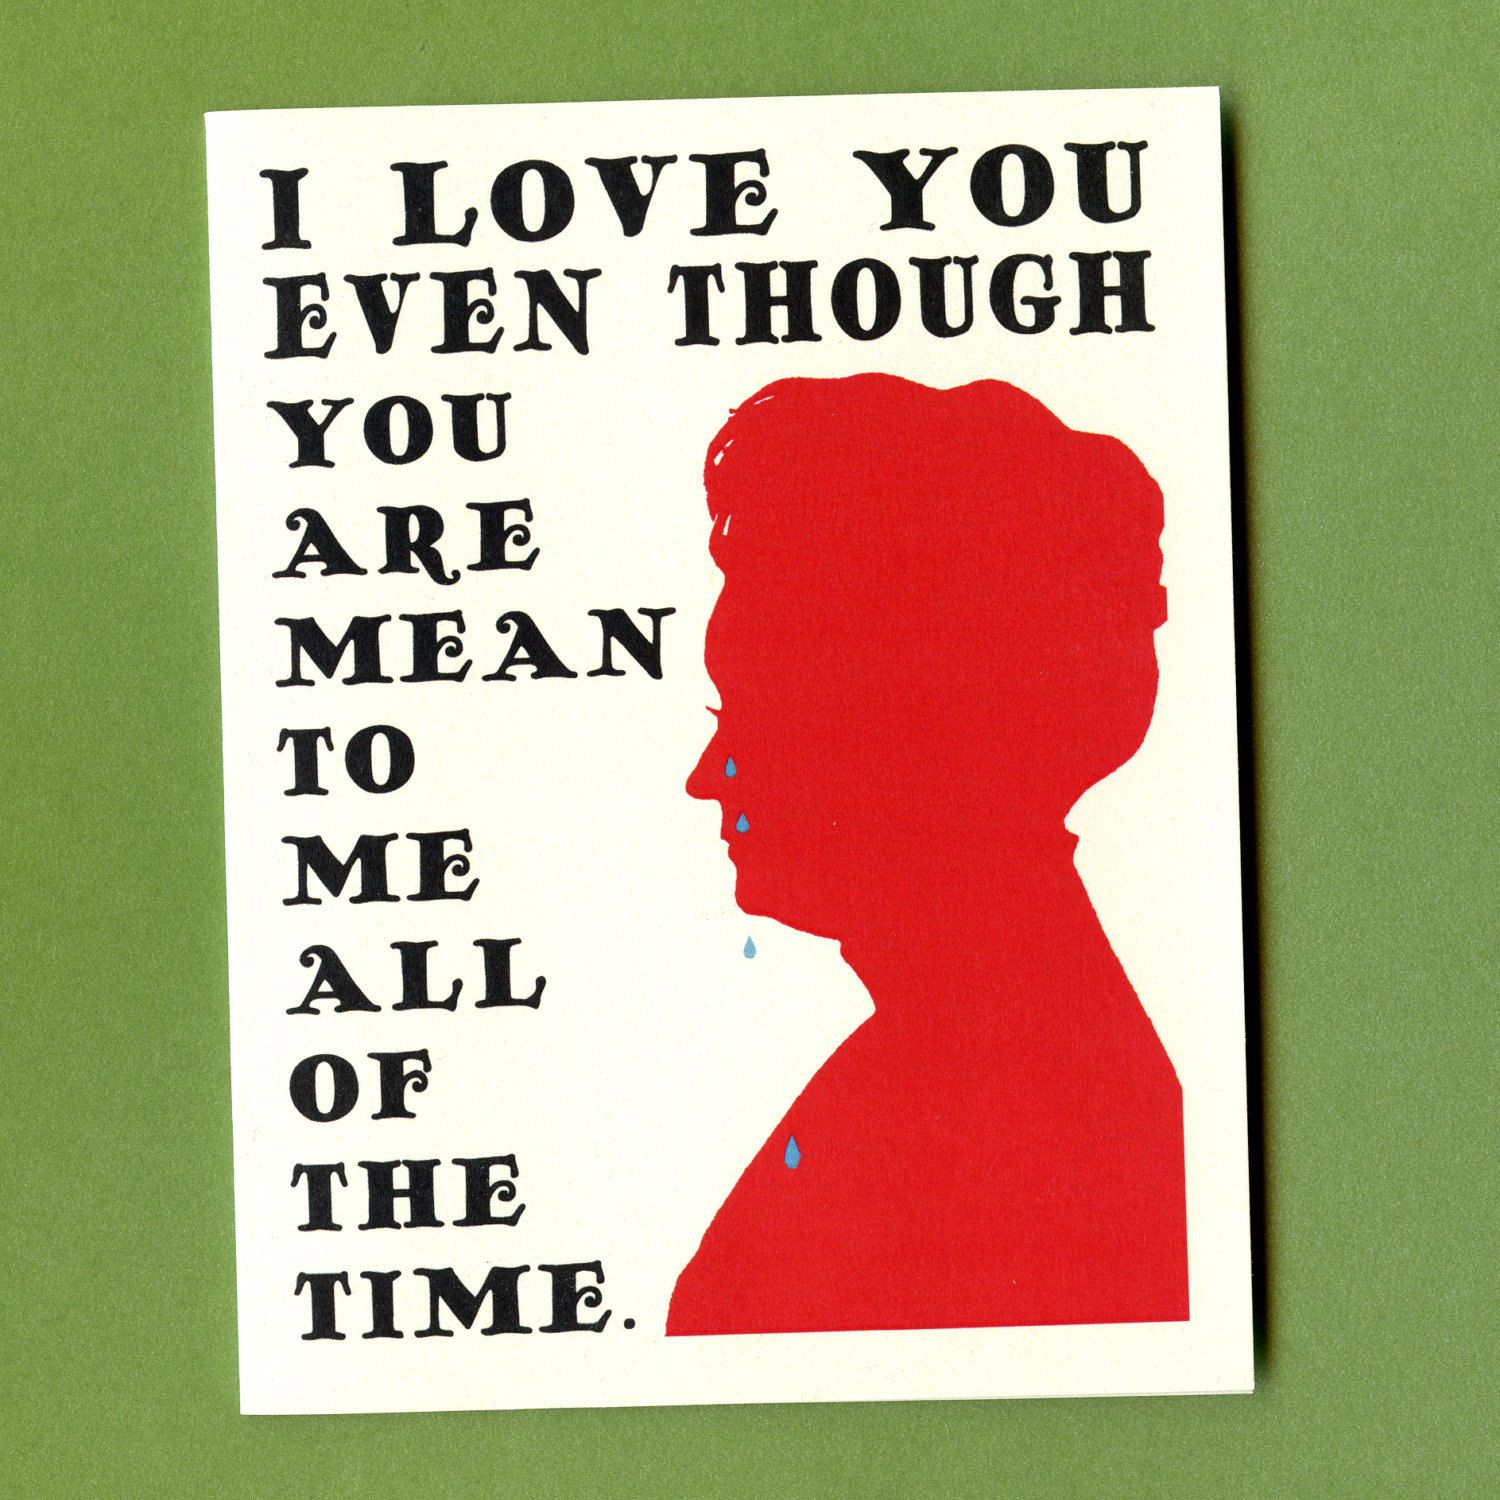 mean to me funny valentine card crying woman 375 via etsy - Etsy Valentines Cards